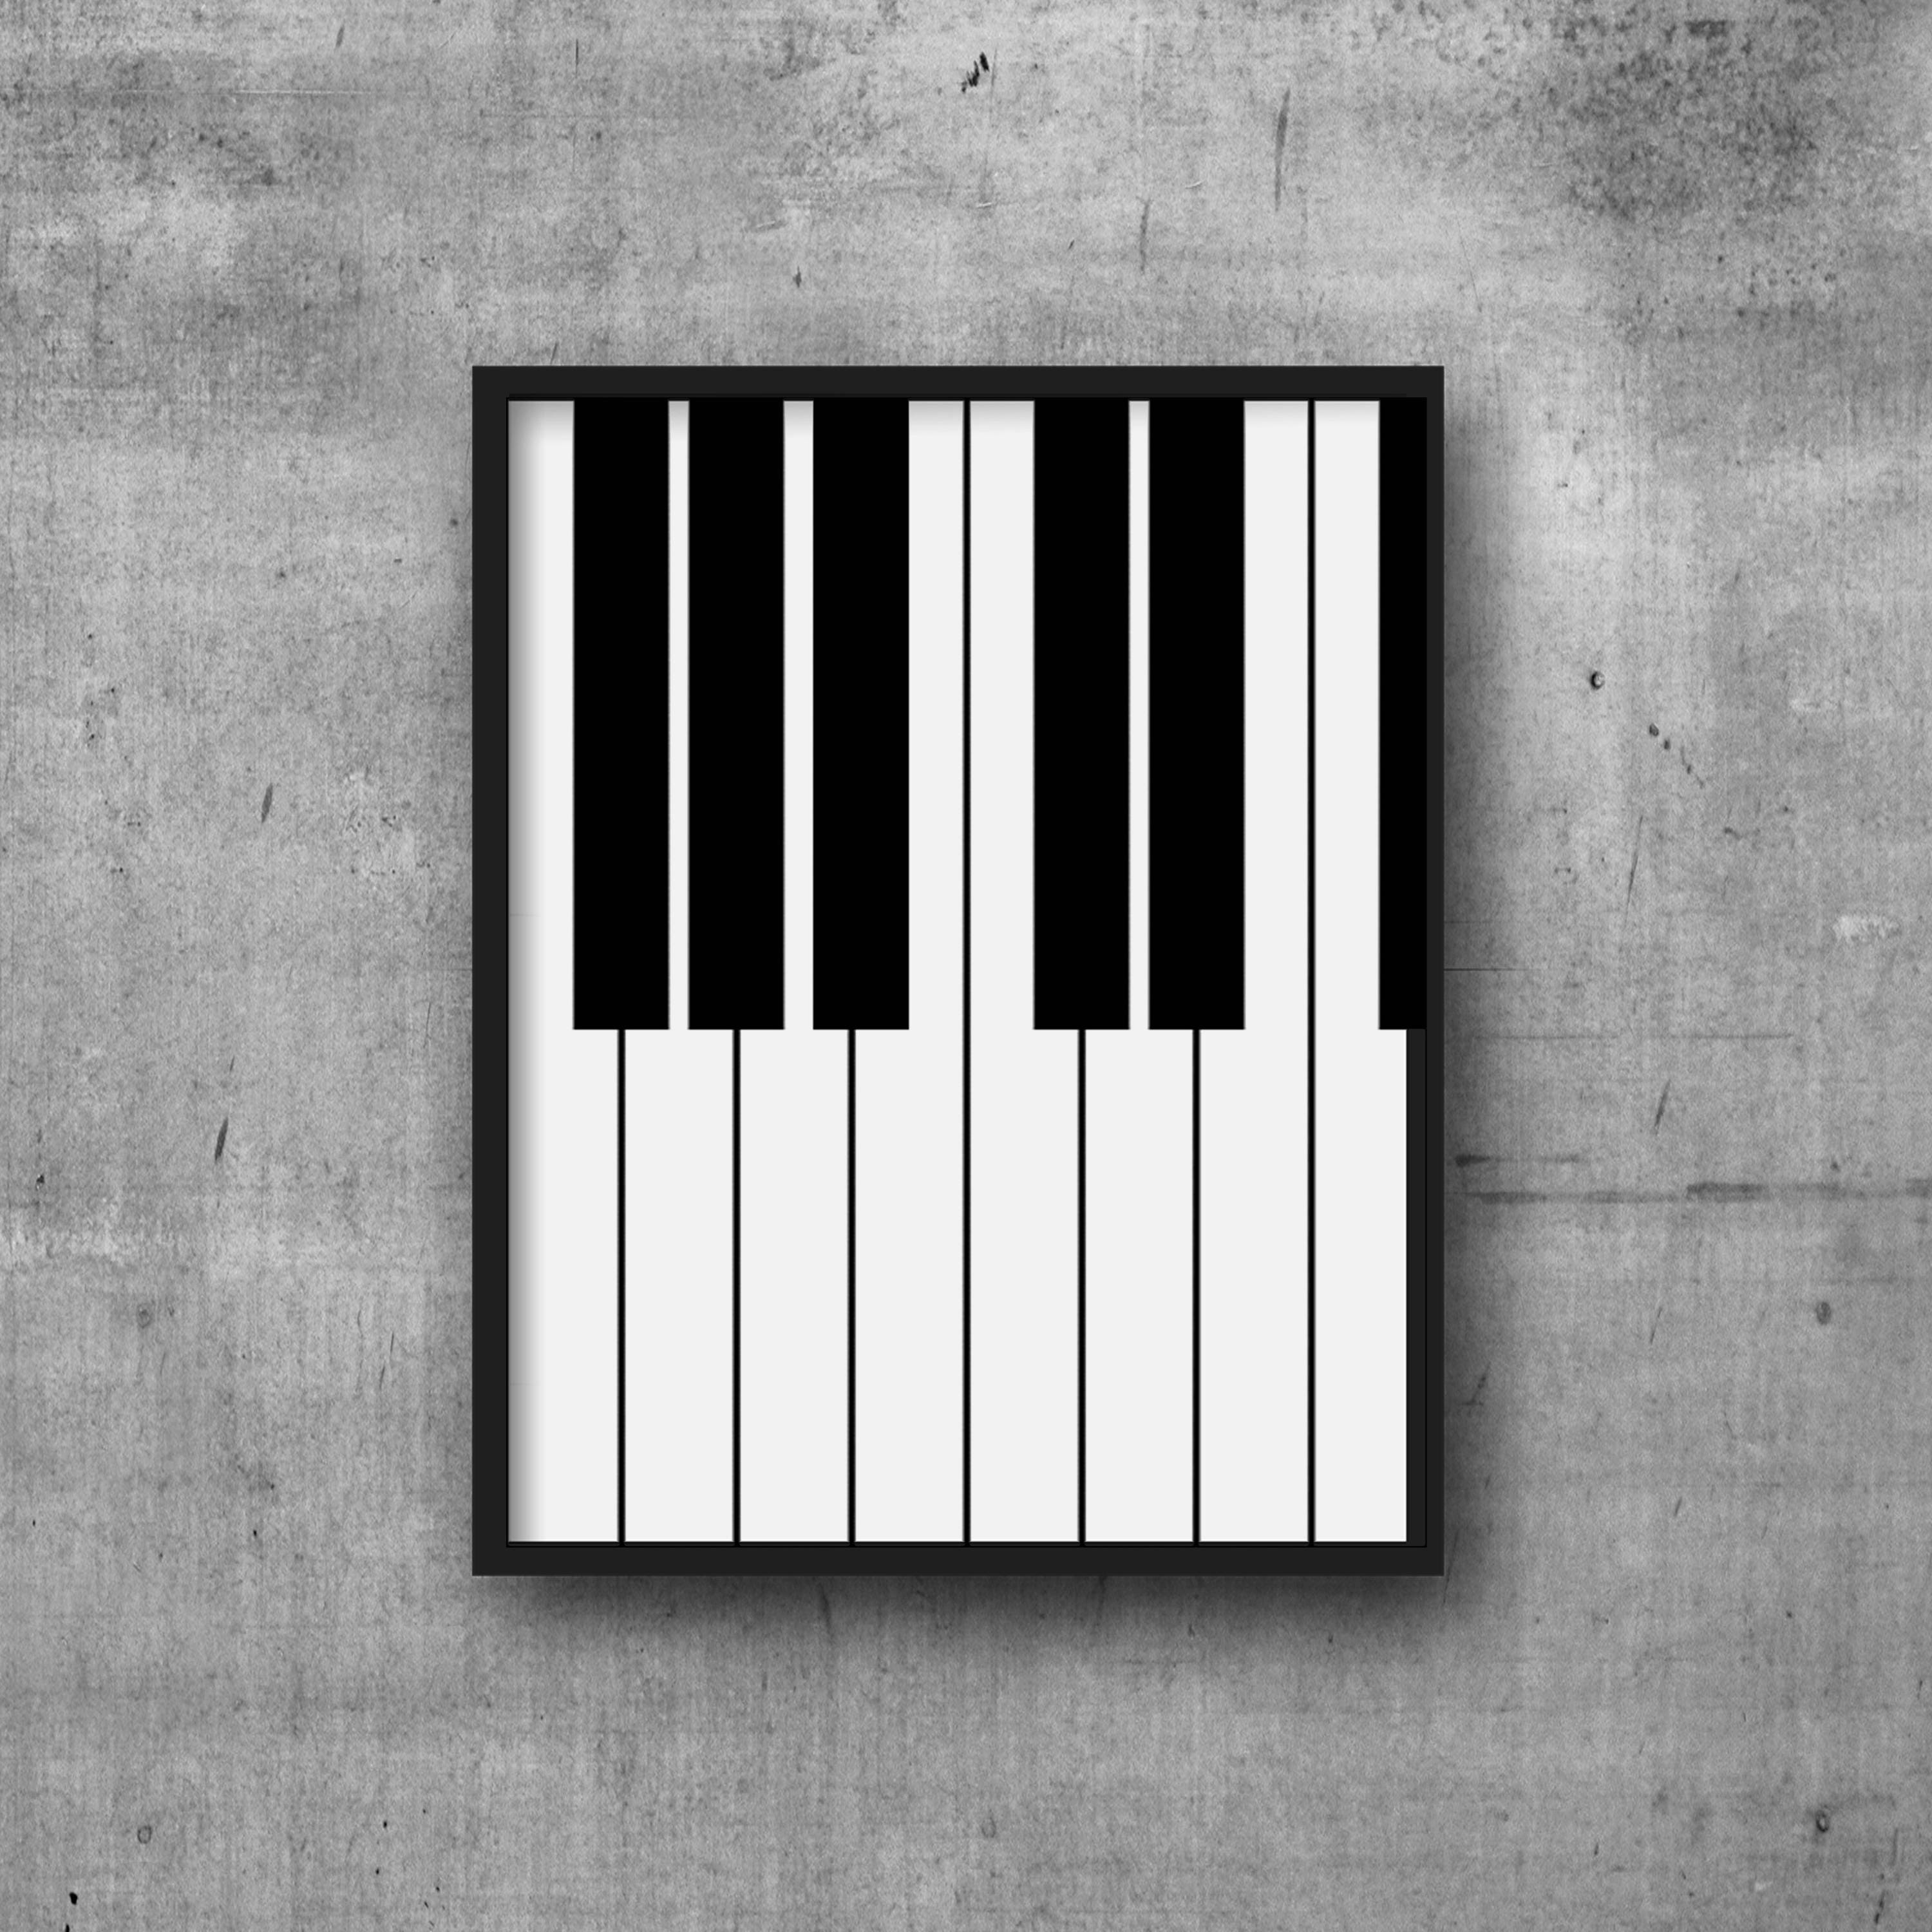 image relating to Printable Piano Keys named Printable Black White Piano Keys Audio Artwork Print - Immediate Electronic Obtain New music Piano Wall Artwork Poster - Printable Minimalist Piano Print